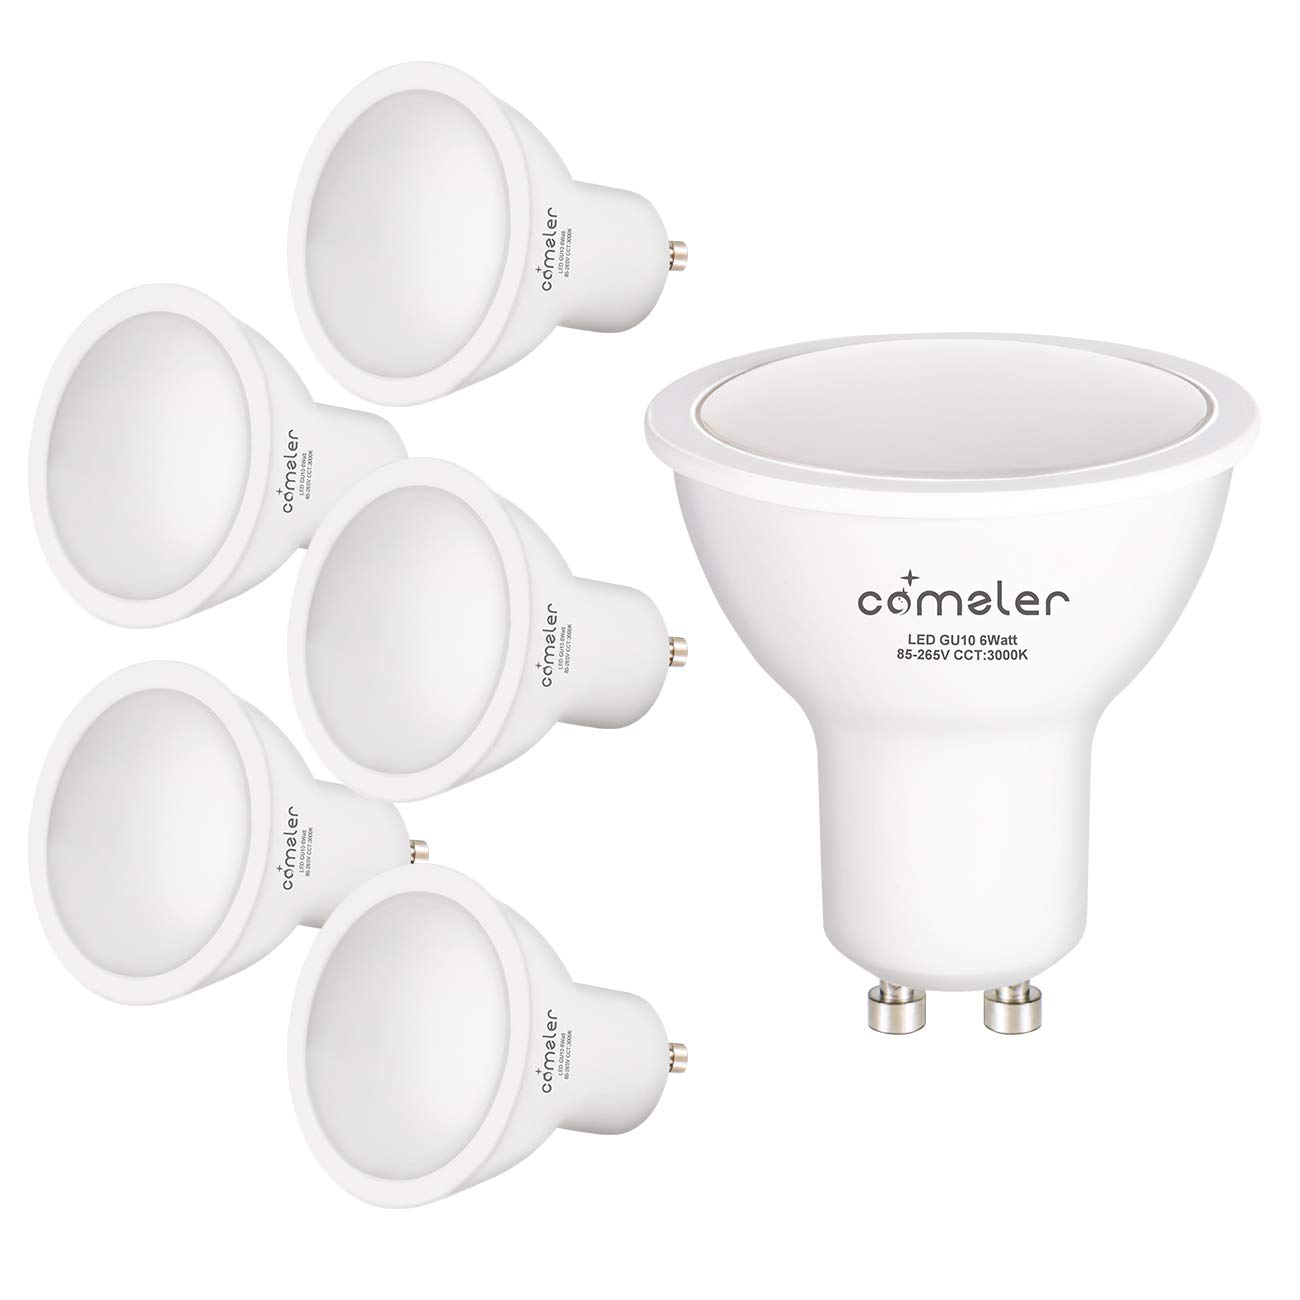 Comzler GU10 LED Bulbs, 6W (50W Equivalent), GU10 Shape Halogen Replacement Bulb, 3000K Warm White, 120°, 120V,550Lm, Not-dimmable, for Track Lighting, Indoor Recessed Cans, Pack of 6 (3000K)